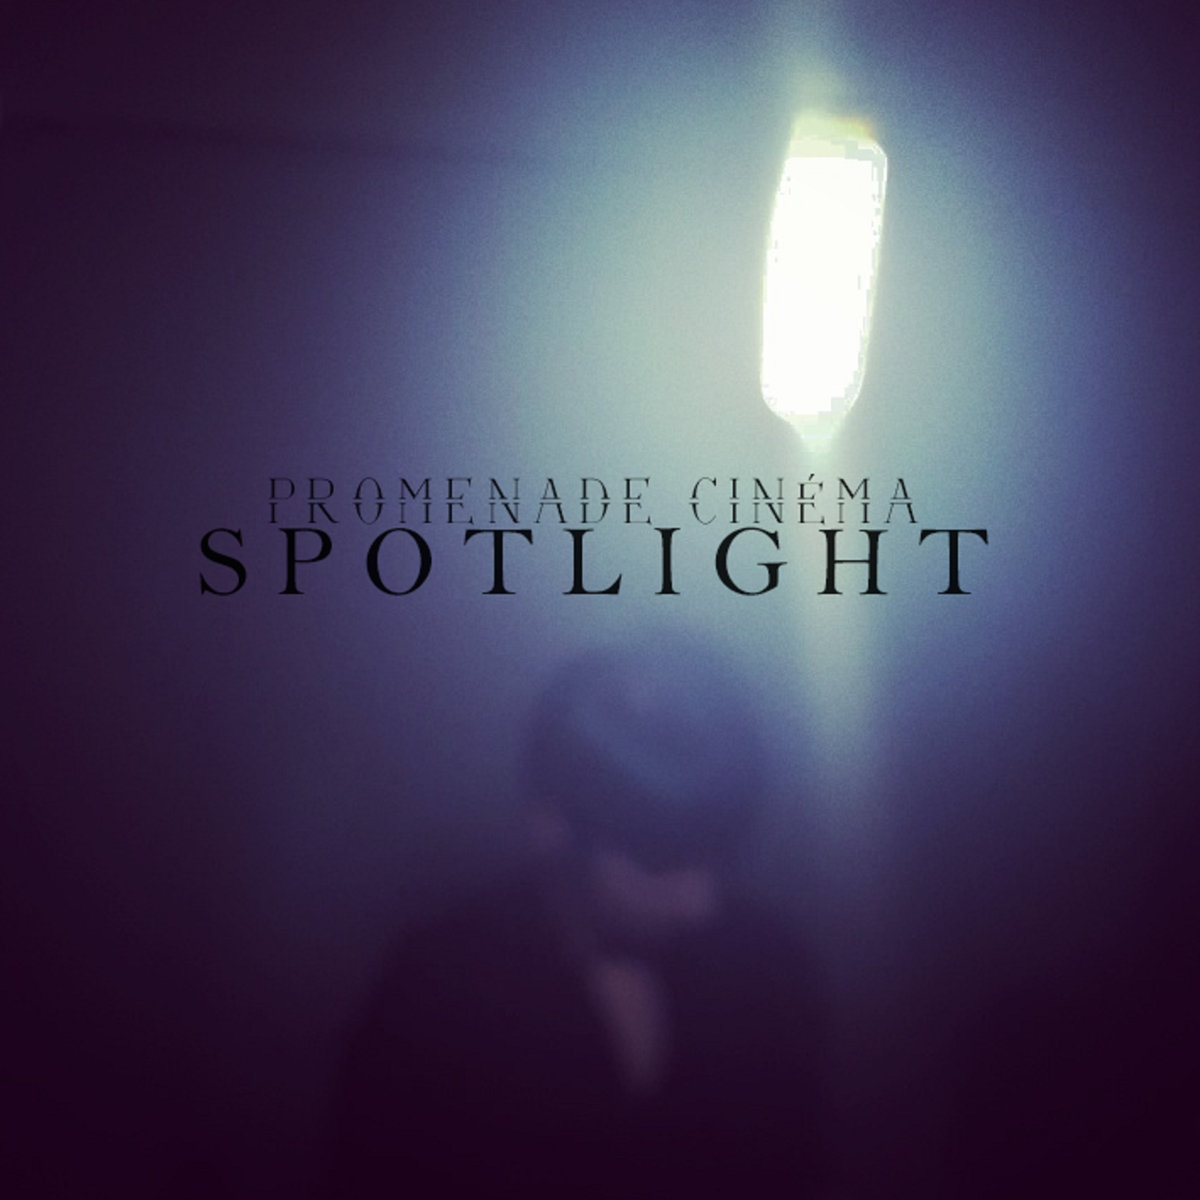 Promenade Cinema, Spotlight